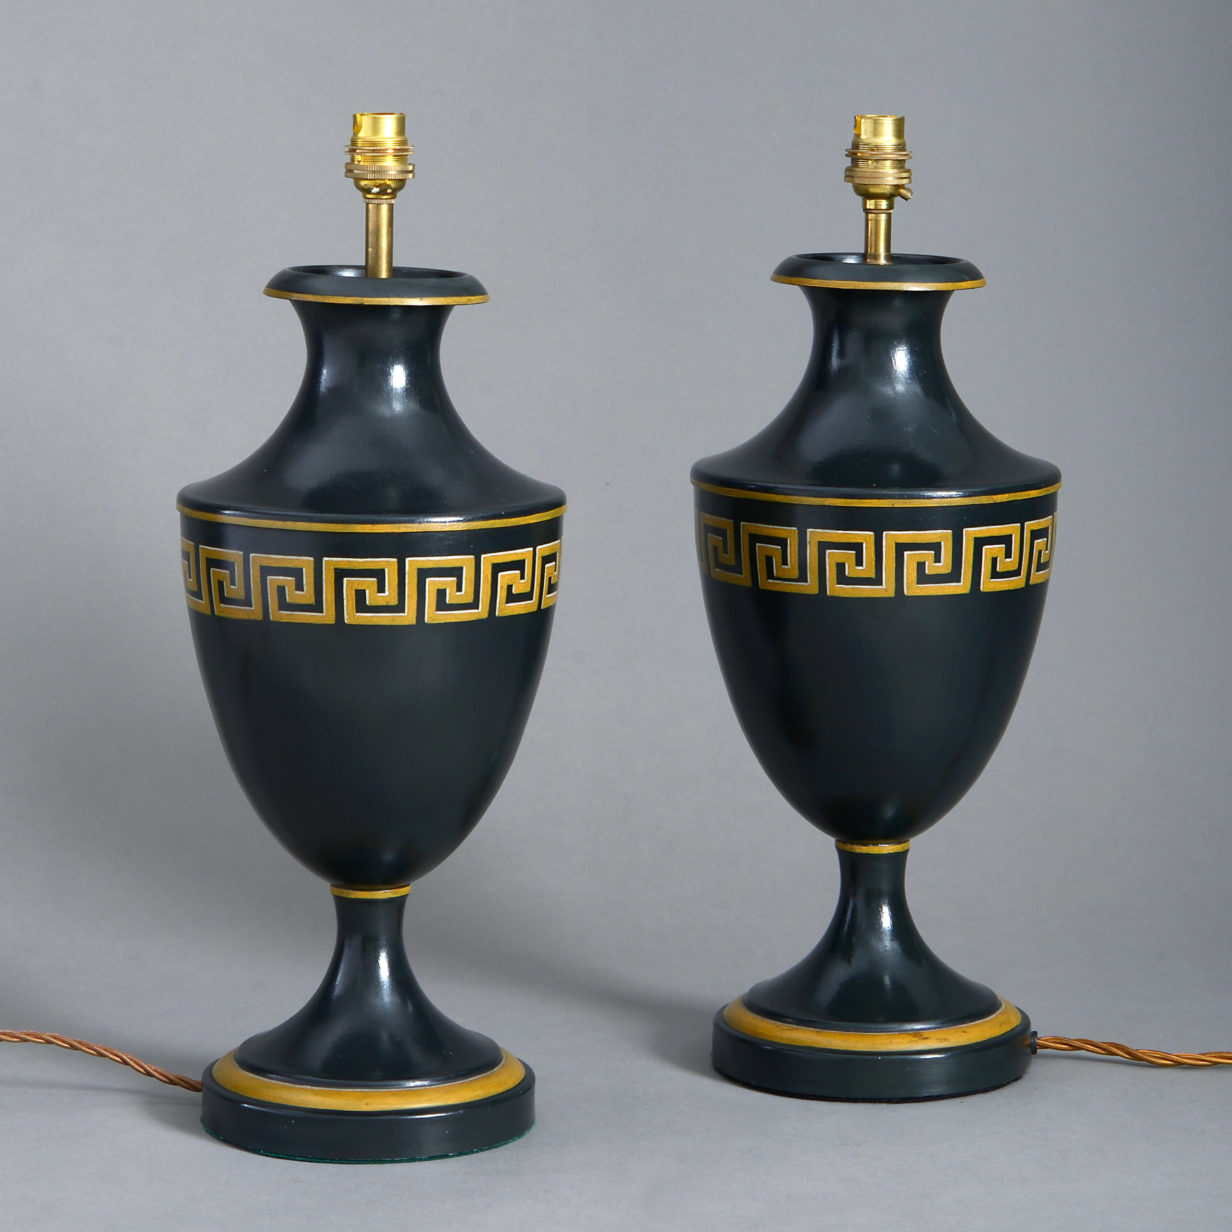 Pair of Tole Greek Key Lamps